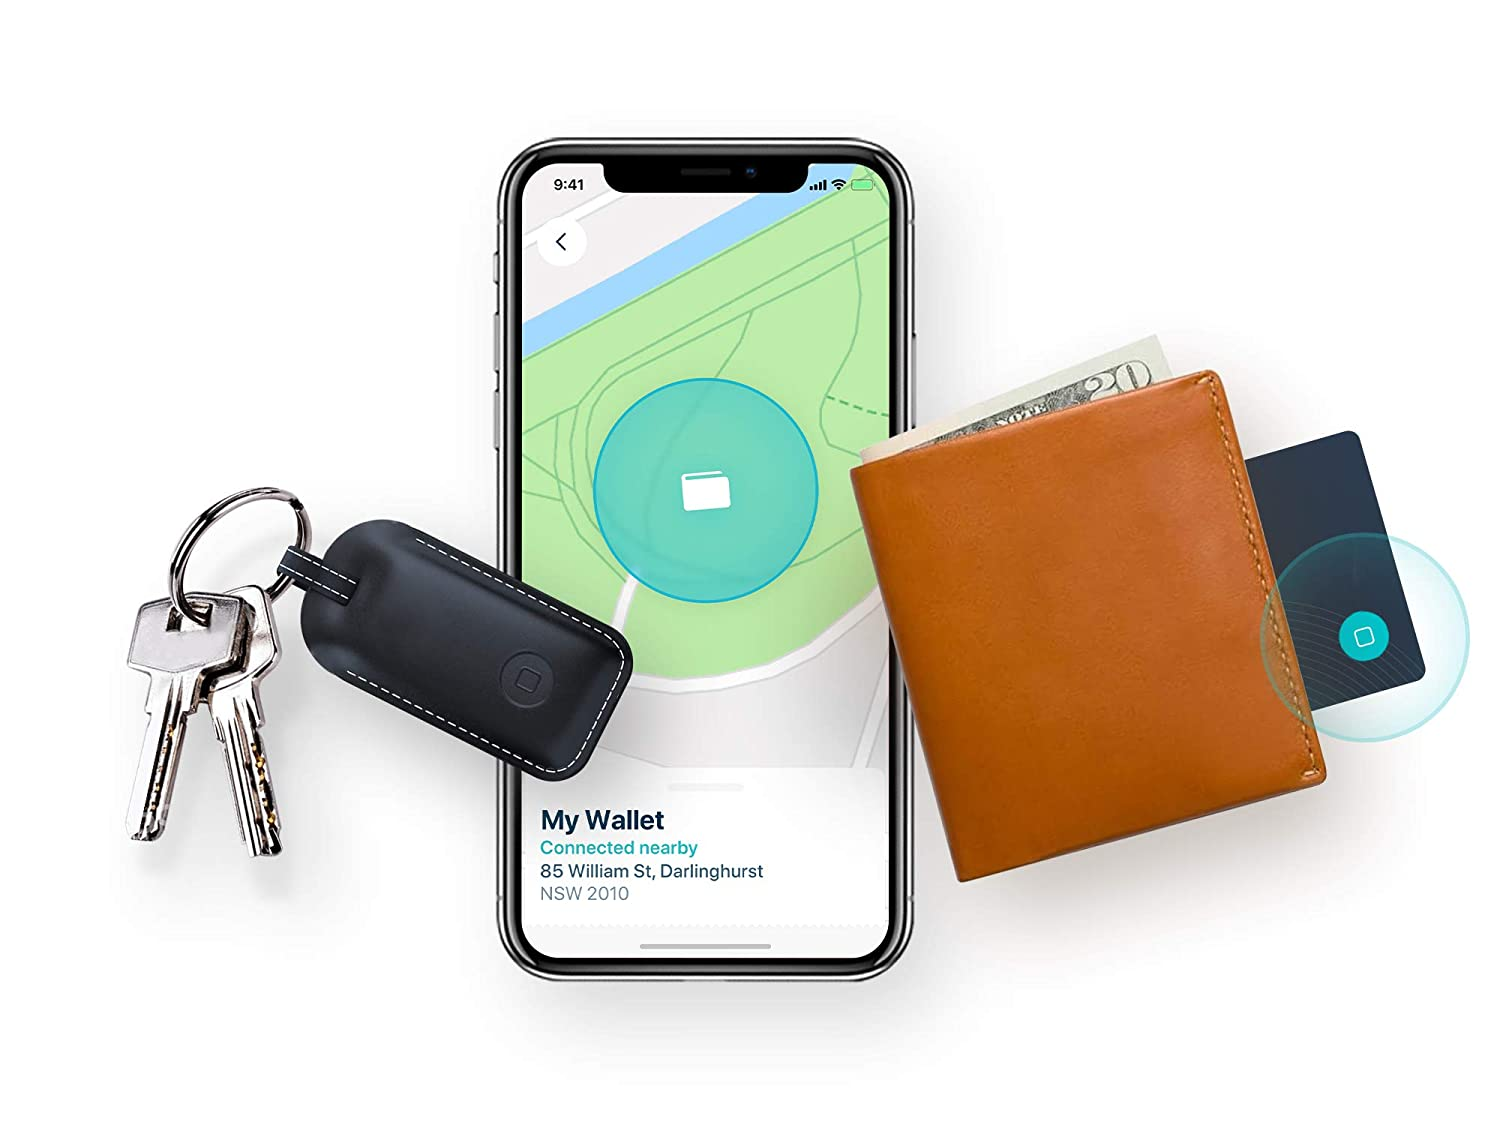 Phone and Wallet 1x Classic Bluetooth Lost Item Tracker Card Safedome Classic Combo Pack Free Companion App Item Finder with GPS-Like Bluetooth Tracking for Lost Keys 1x Smart Key Locator Fob